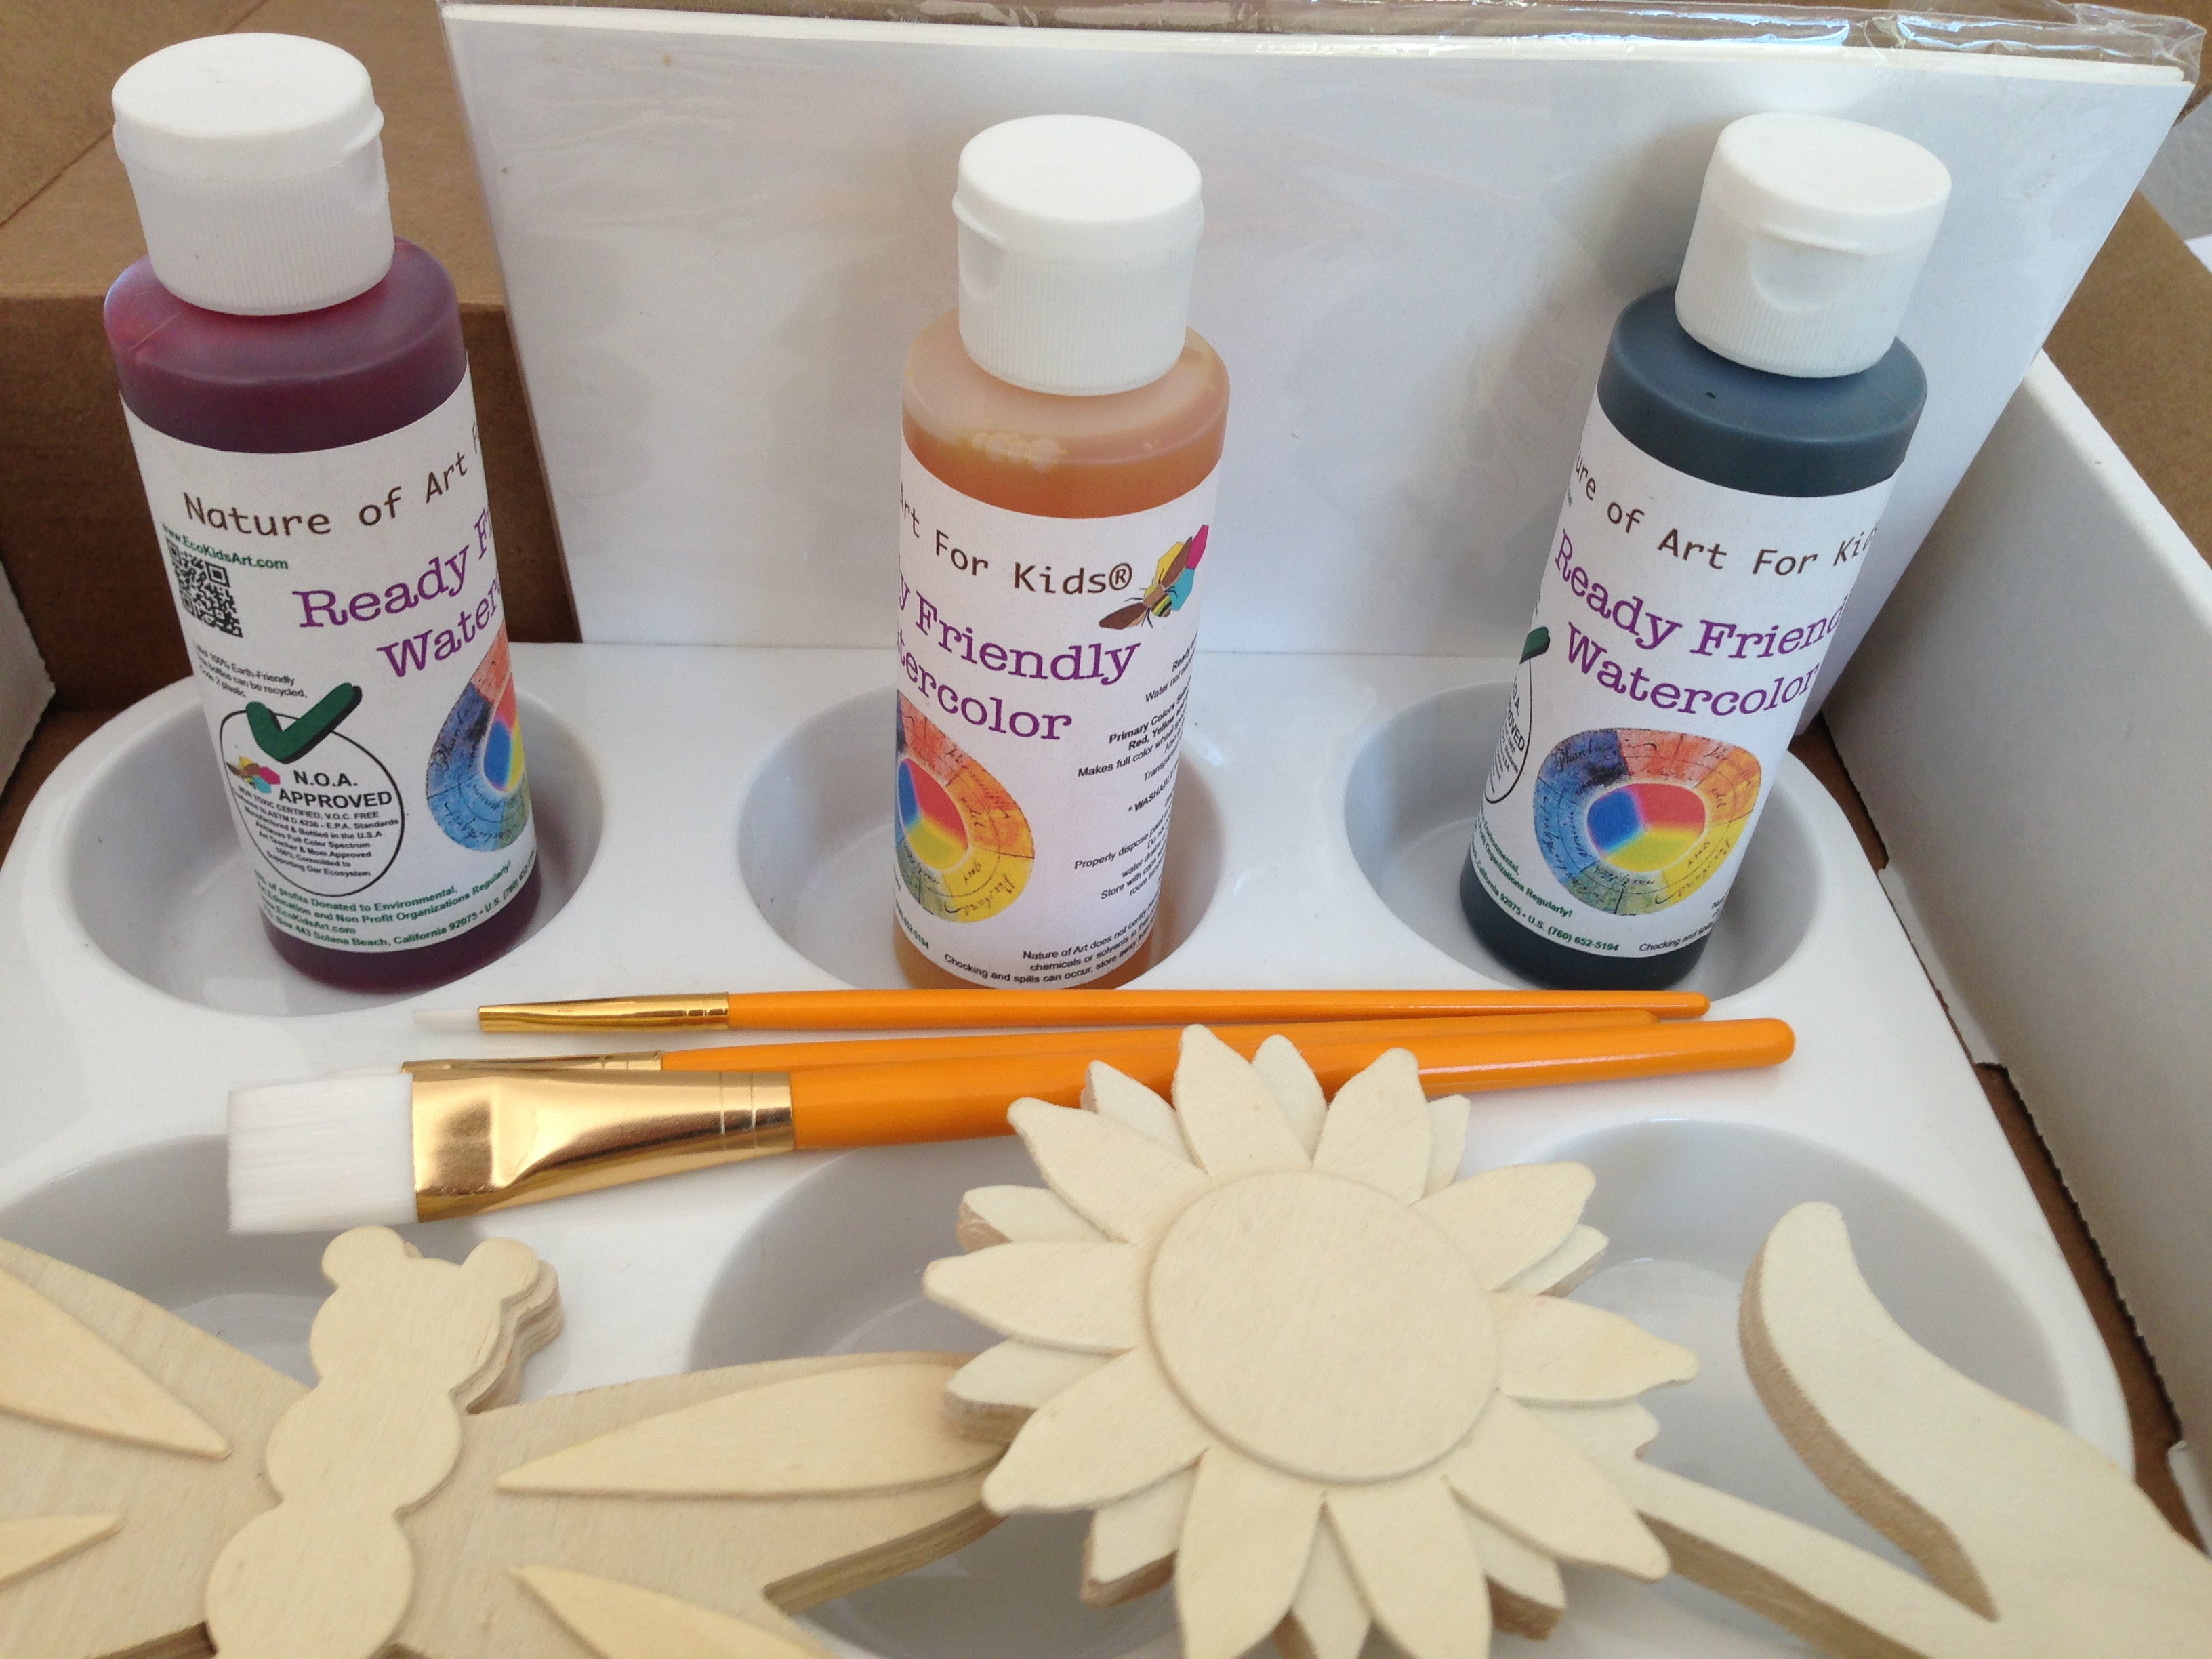 Buy Kids Paint Non-toxic, Eco-friendly Paints Safer children's Finger Paint